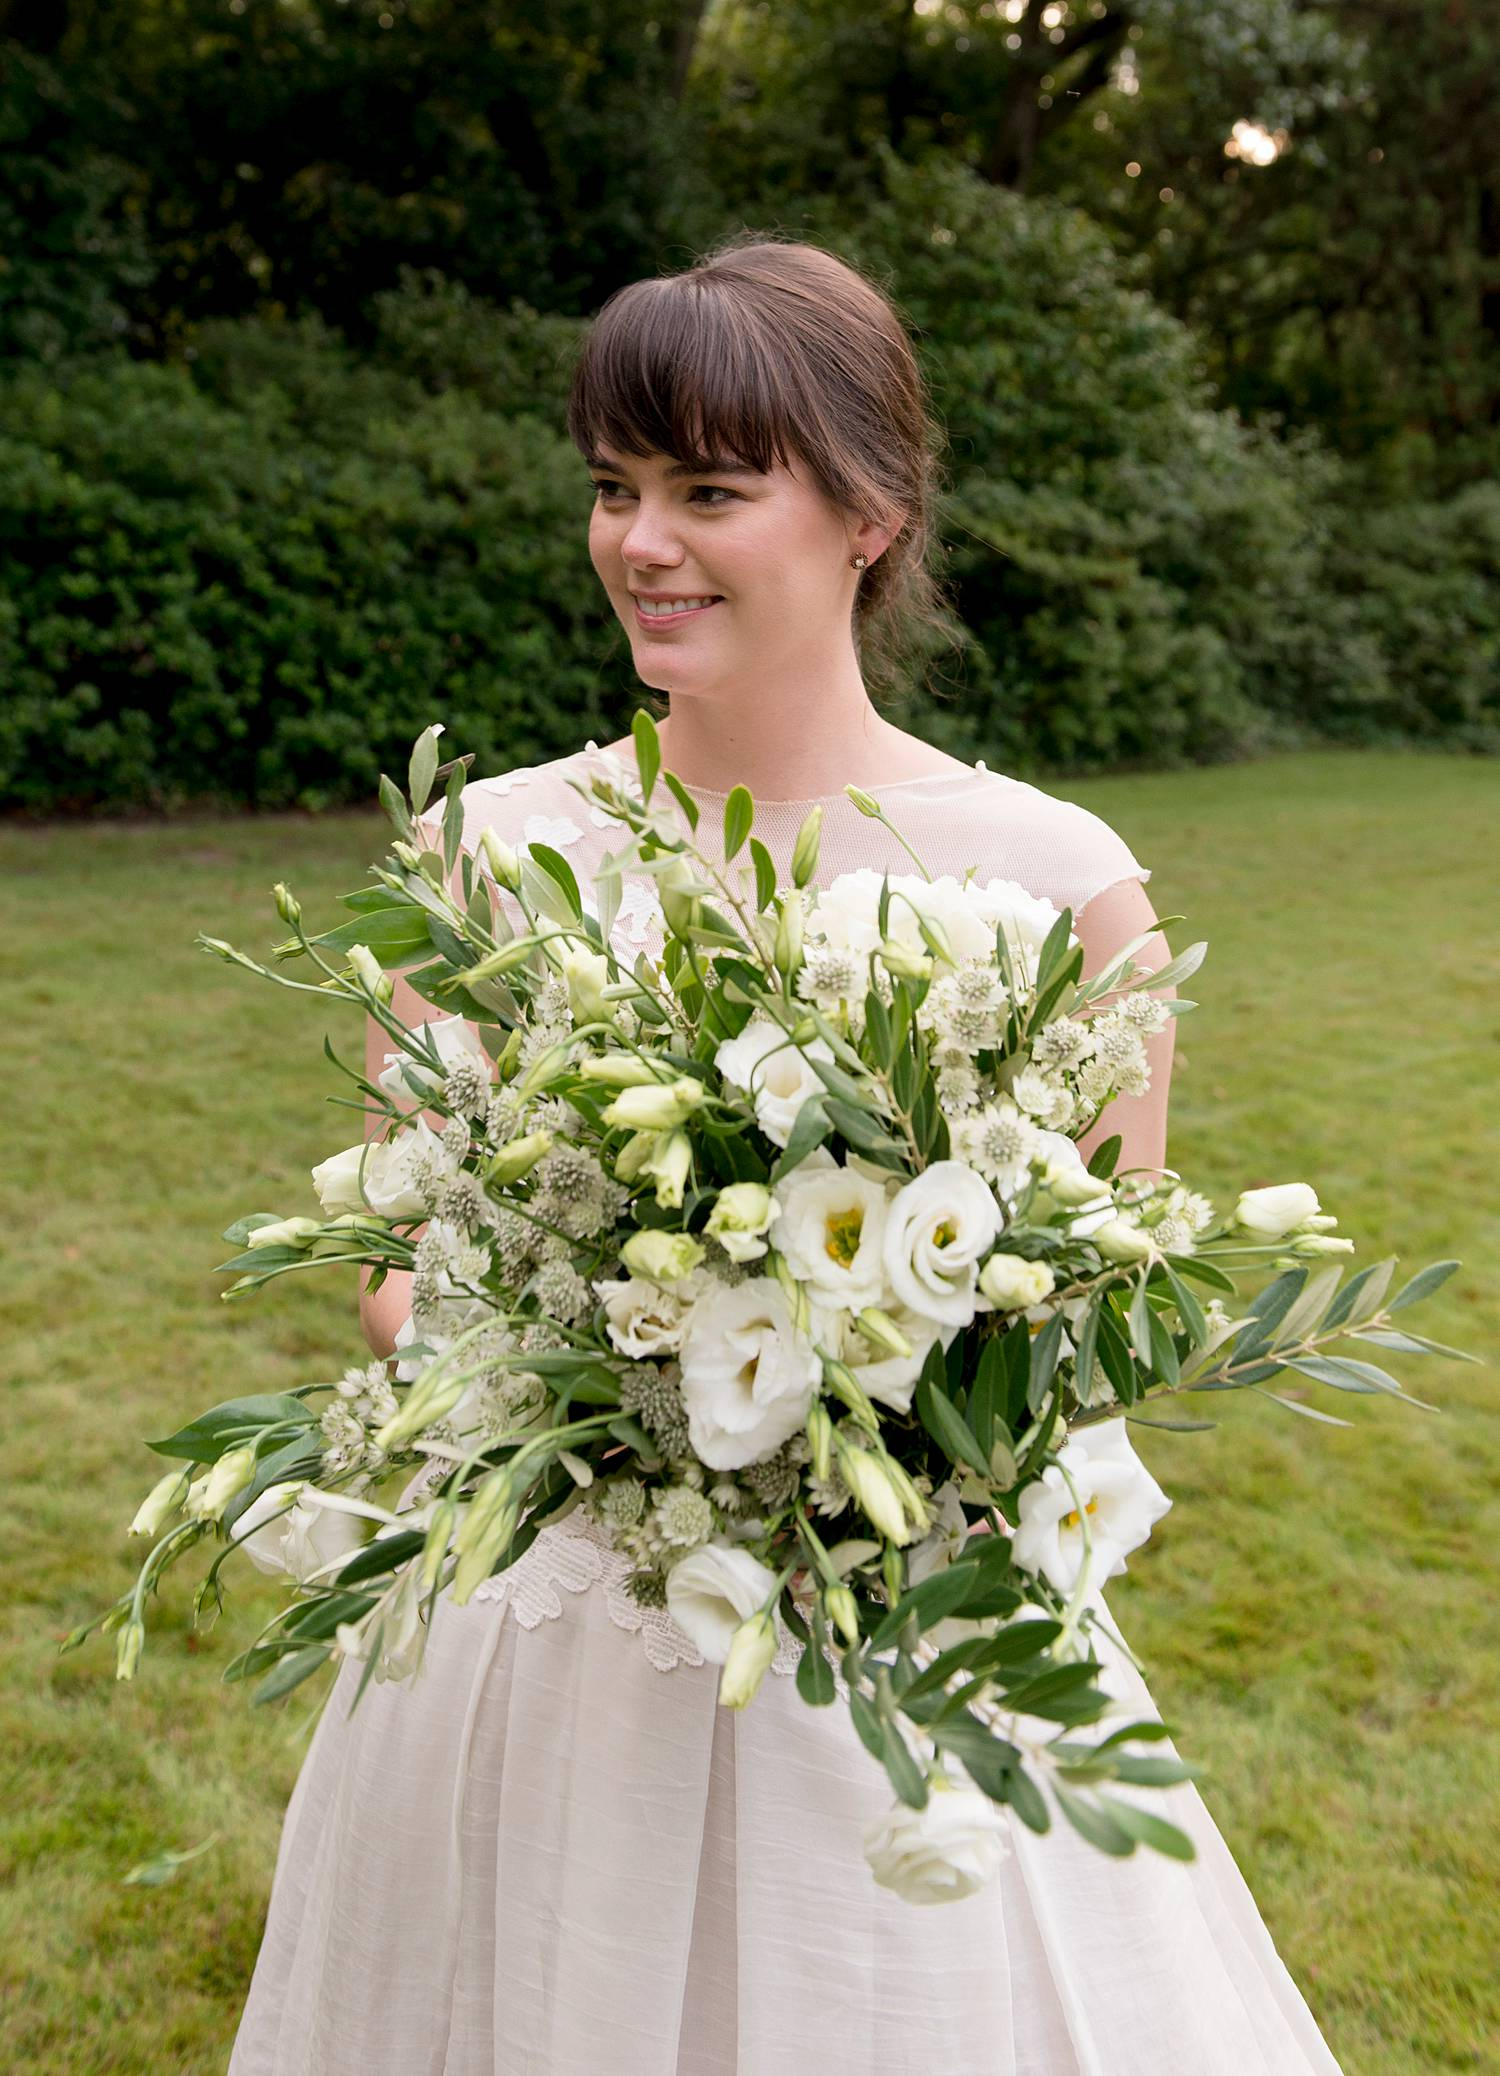 Featured Floral: Olive Branch, Lisianthus, Astrantia - Elizabeth + Drew, Old Medical College, Gately Williams Photography